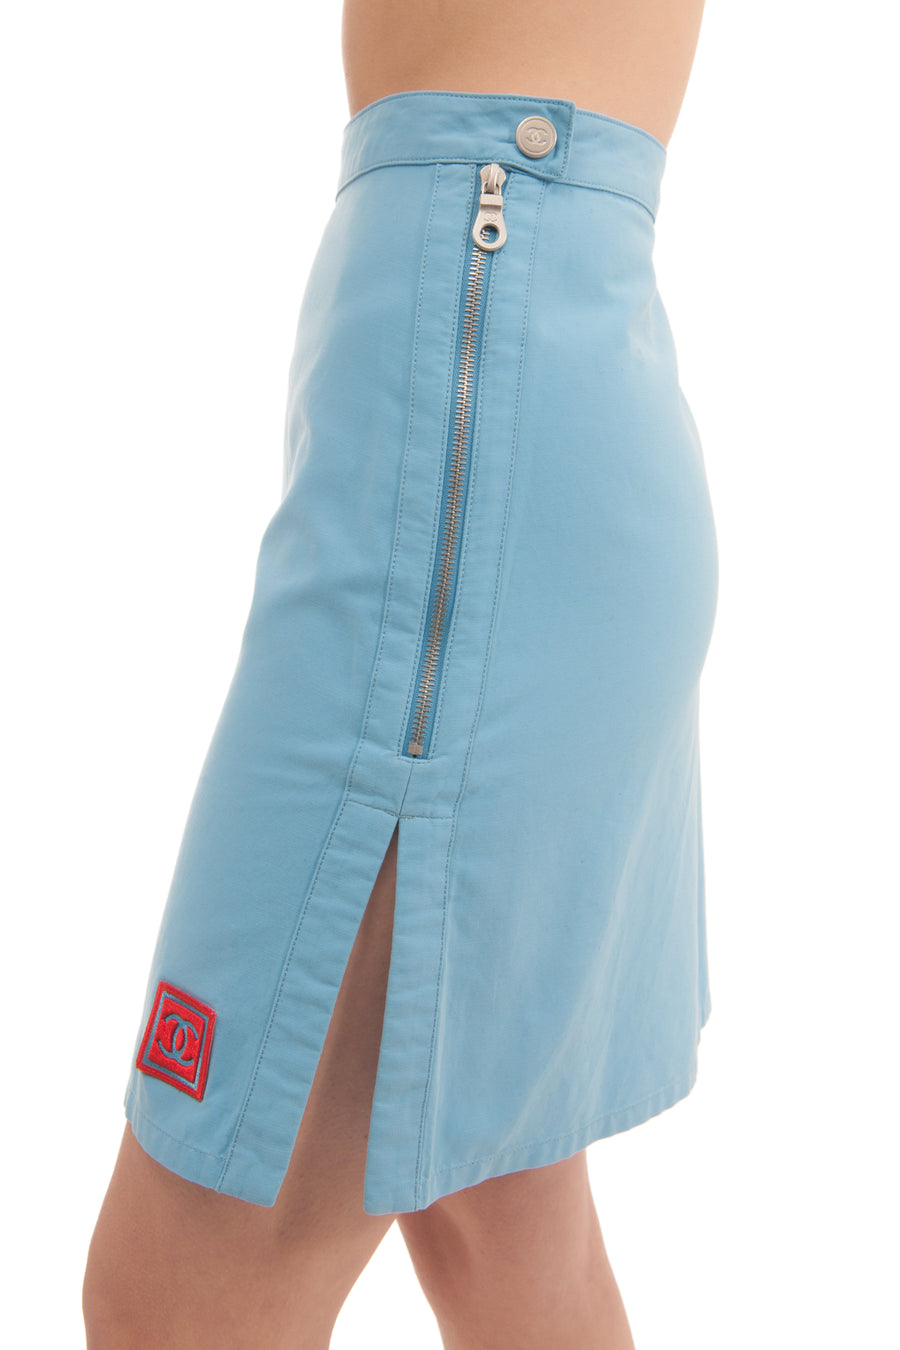 Chanel Identification 2002 Spring Blue A-Line Mini Skirt